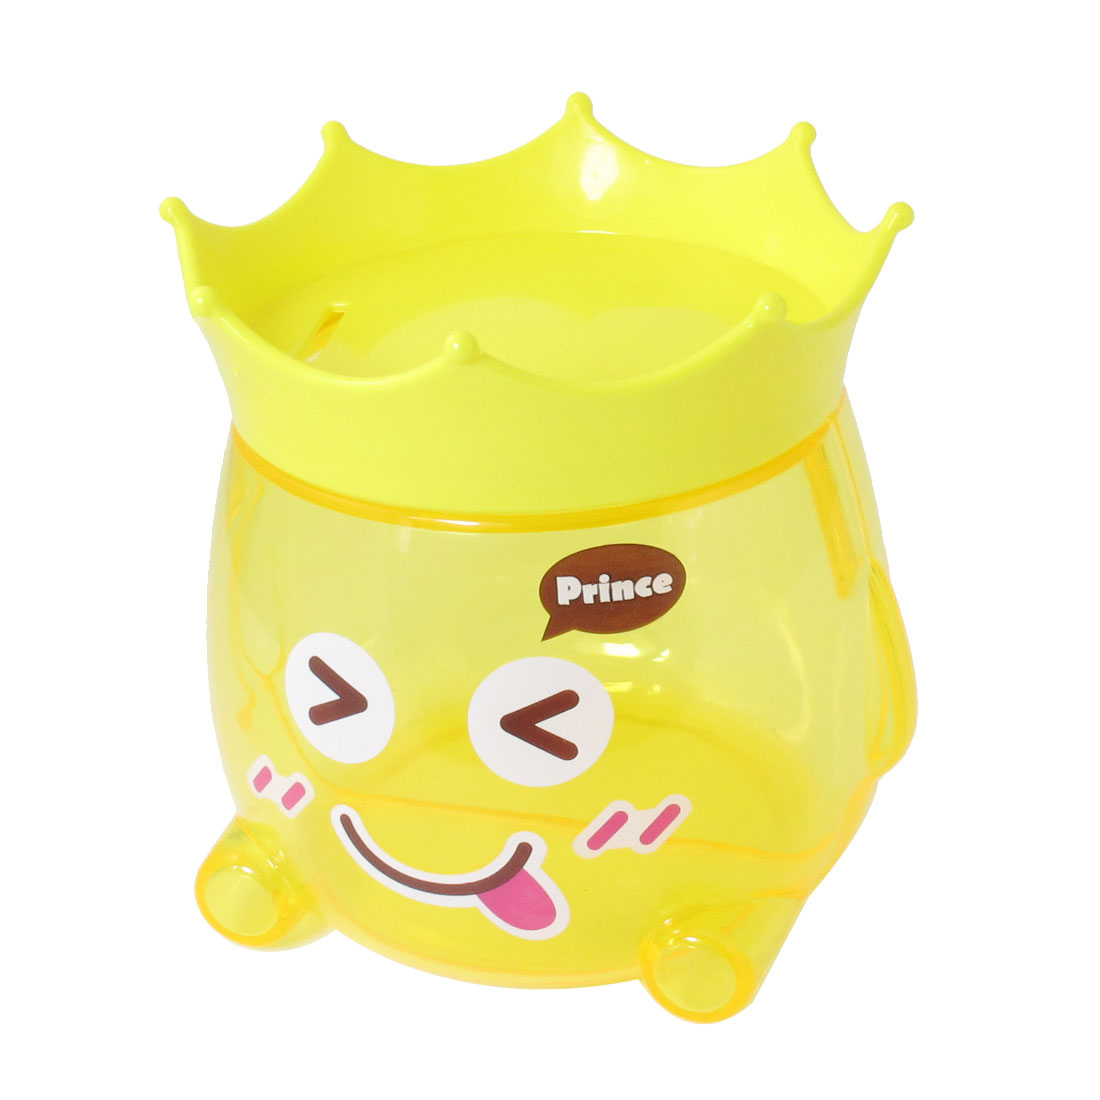 Cartoon Design Yellow Coin Money Saving Piggy Box Bank Gift